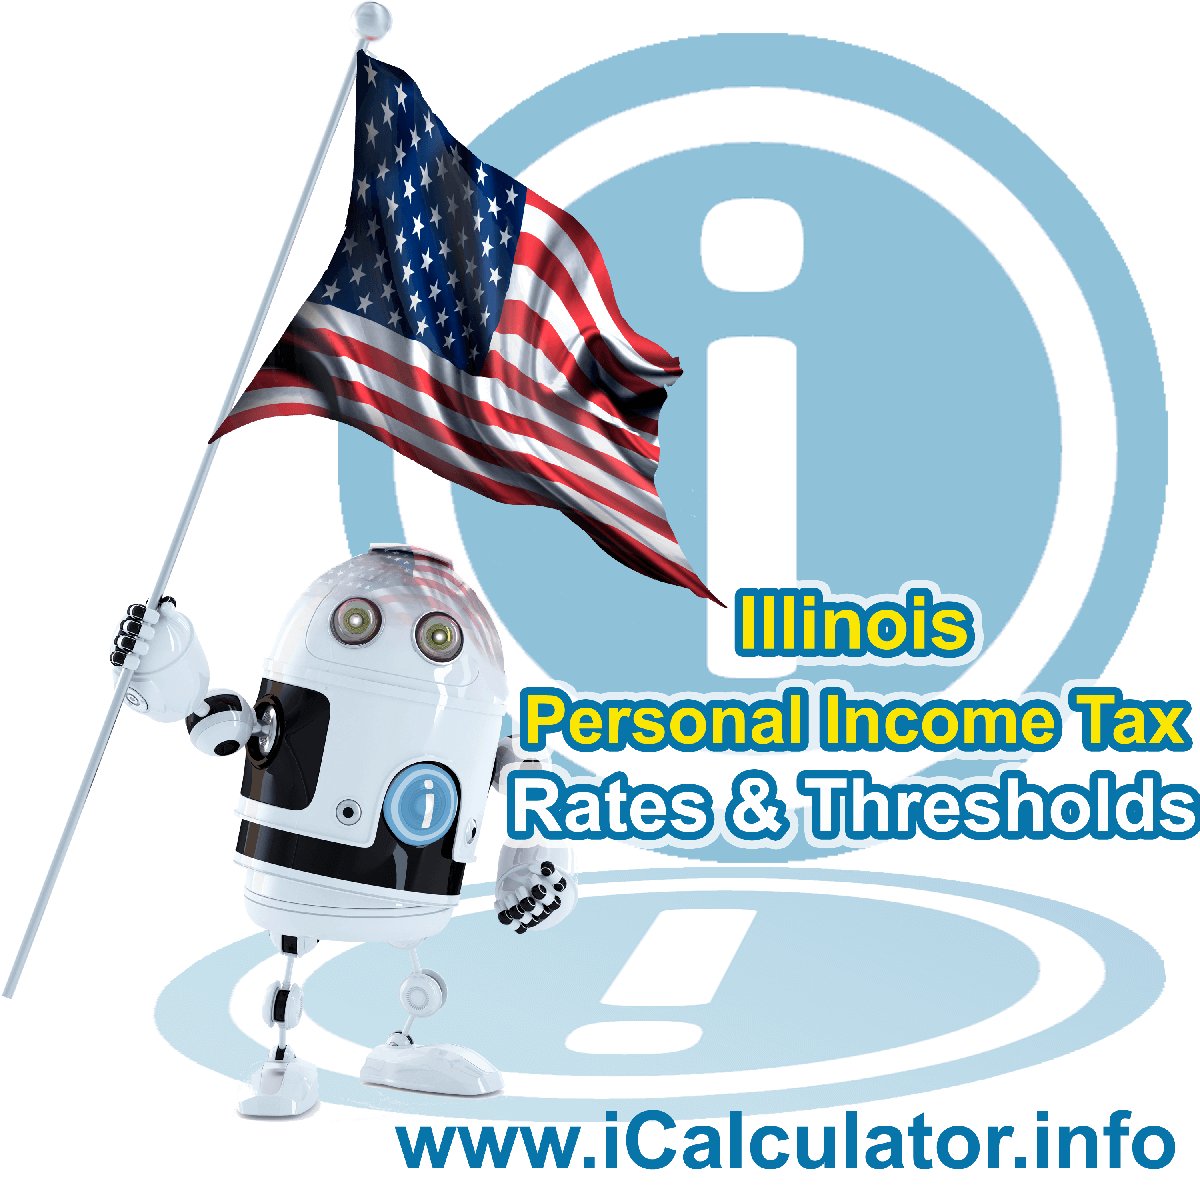 Illinois State Tax Tables 2019. This image displays details of the Illinois State Tax Tables for the 2019 tax return year which is provided in support of the 2019 US Tax Calculator